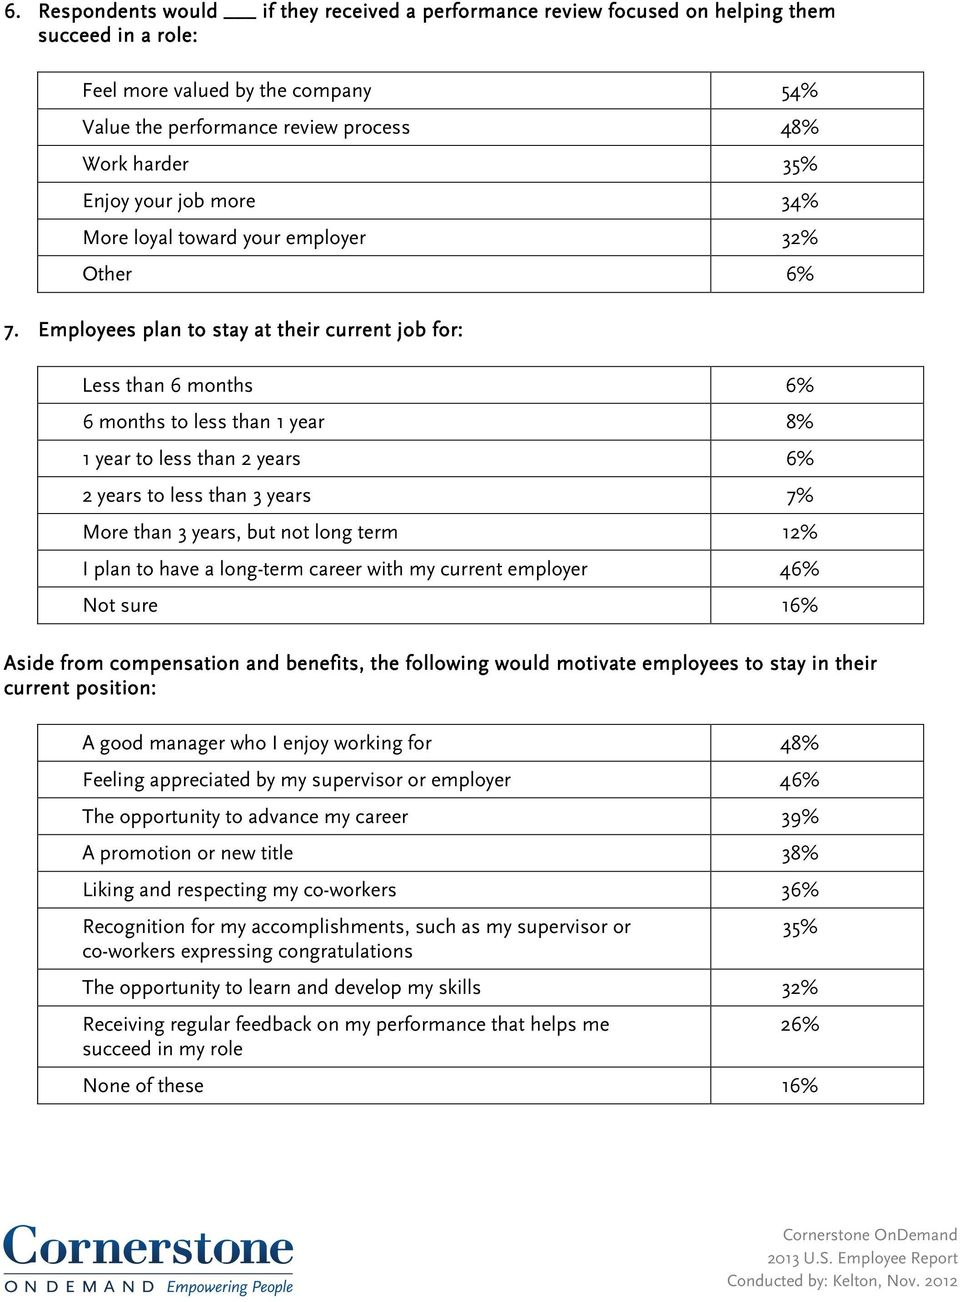 Employees plan to stay at their current job for: Less than 6 months 6% 6 months to less than 1 year 8% 1 year to less than 2 years 6% 2 years to less than 3 years 7% More than 3 years, but not long